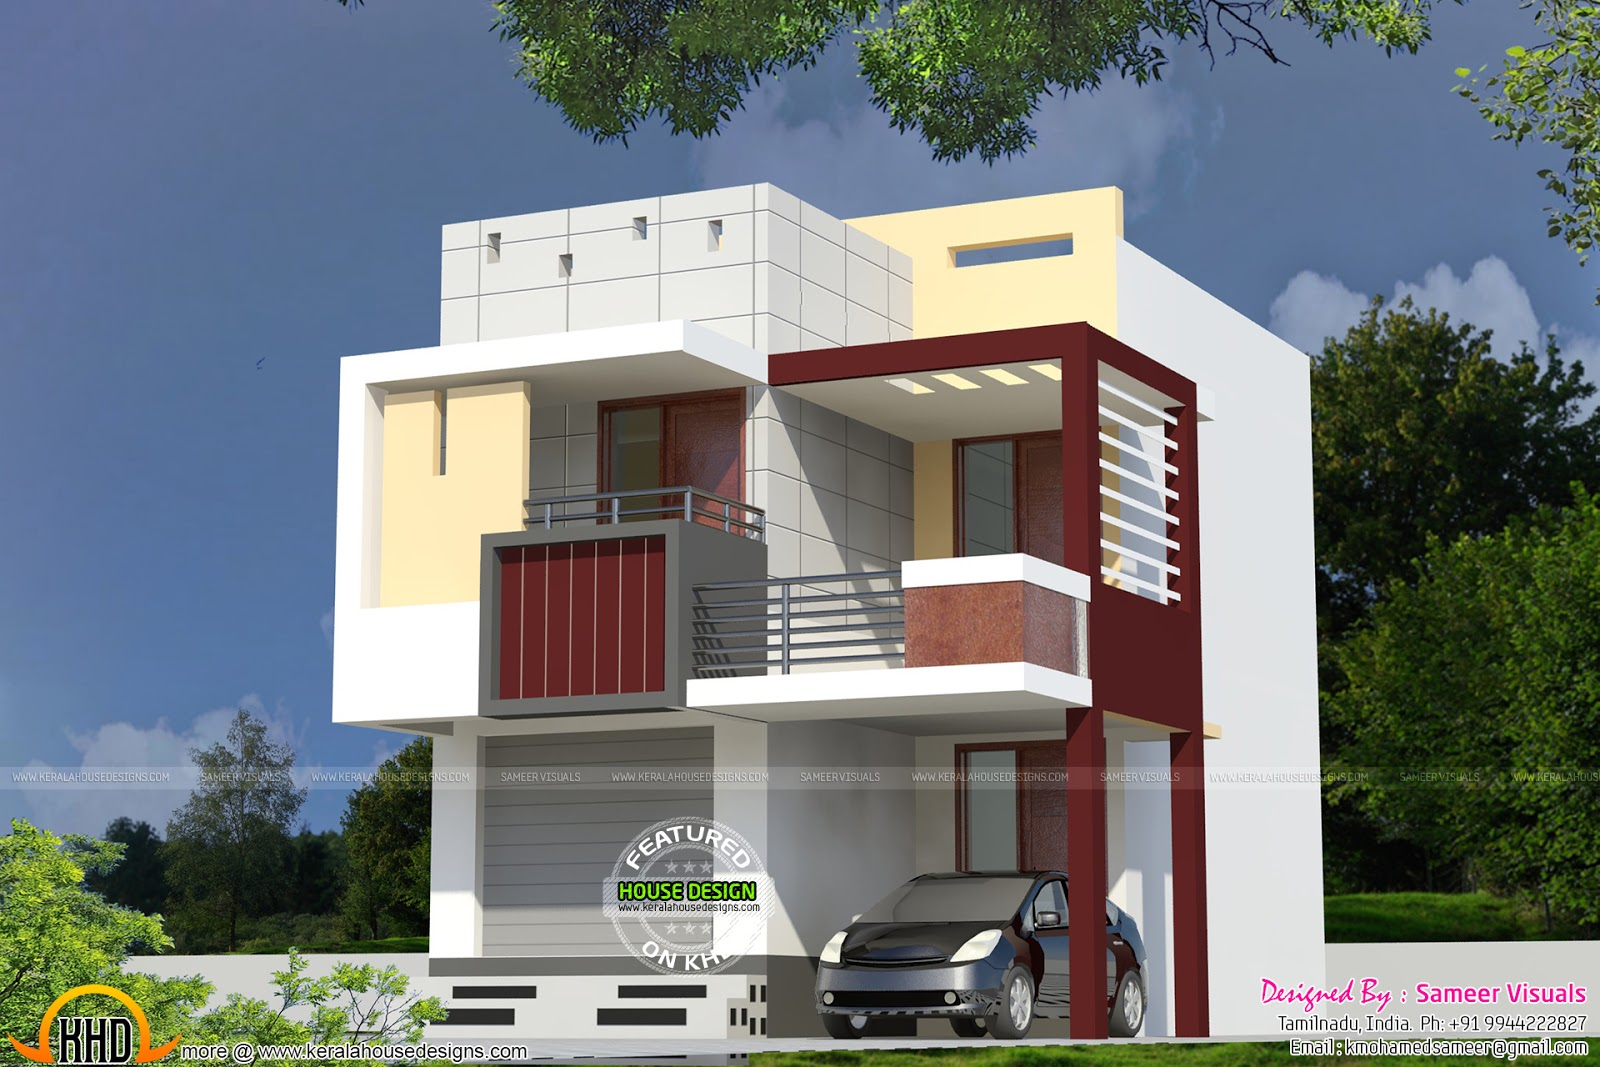 Home Designs Double Floor Of Very Small Double Storied House Kerala Home Design And